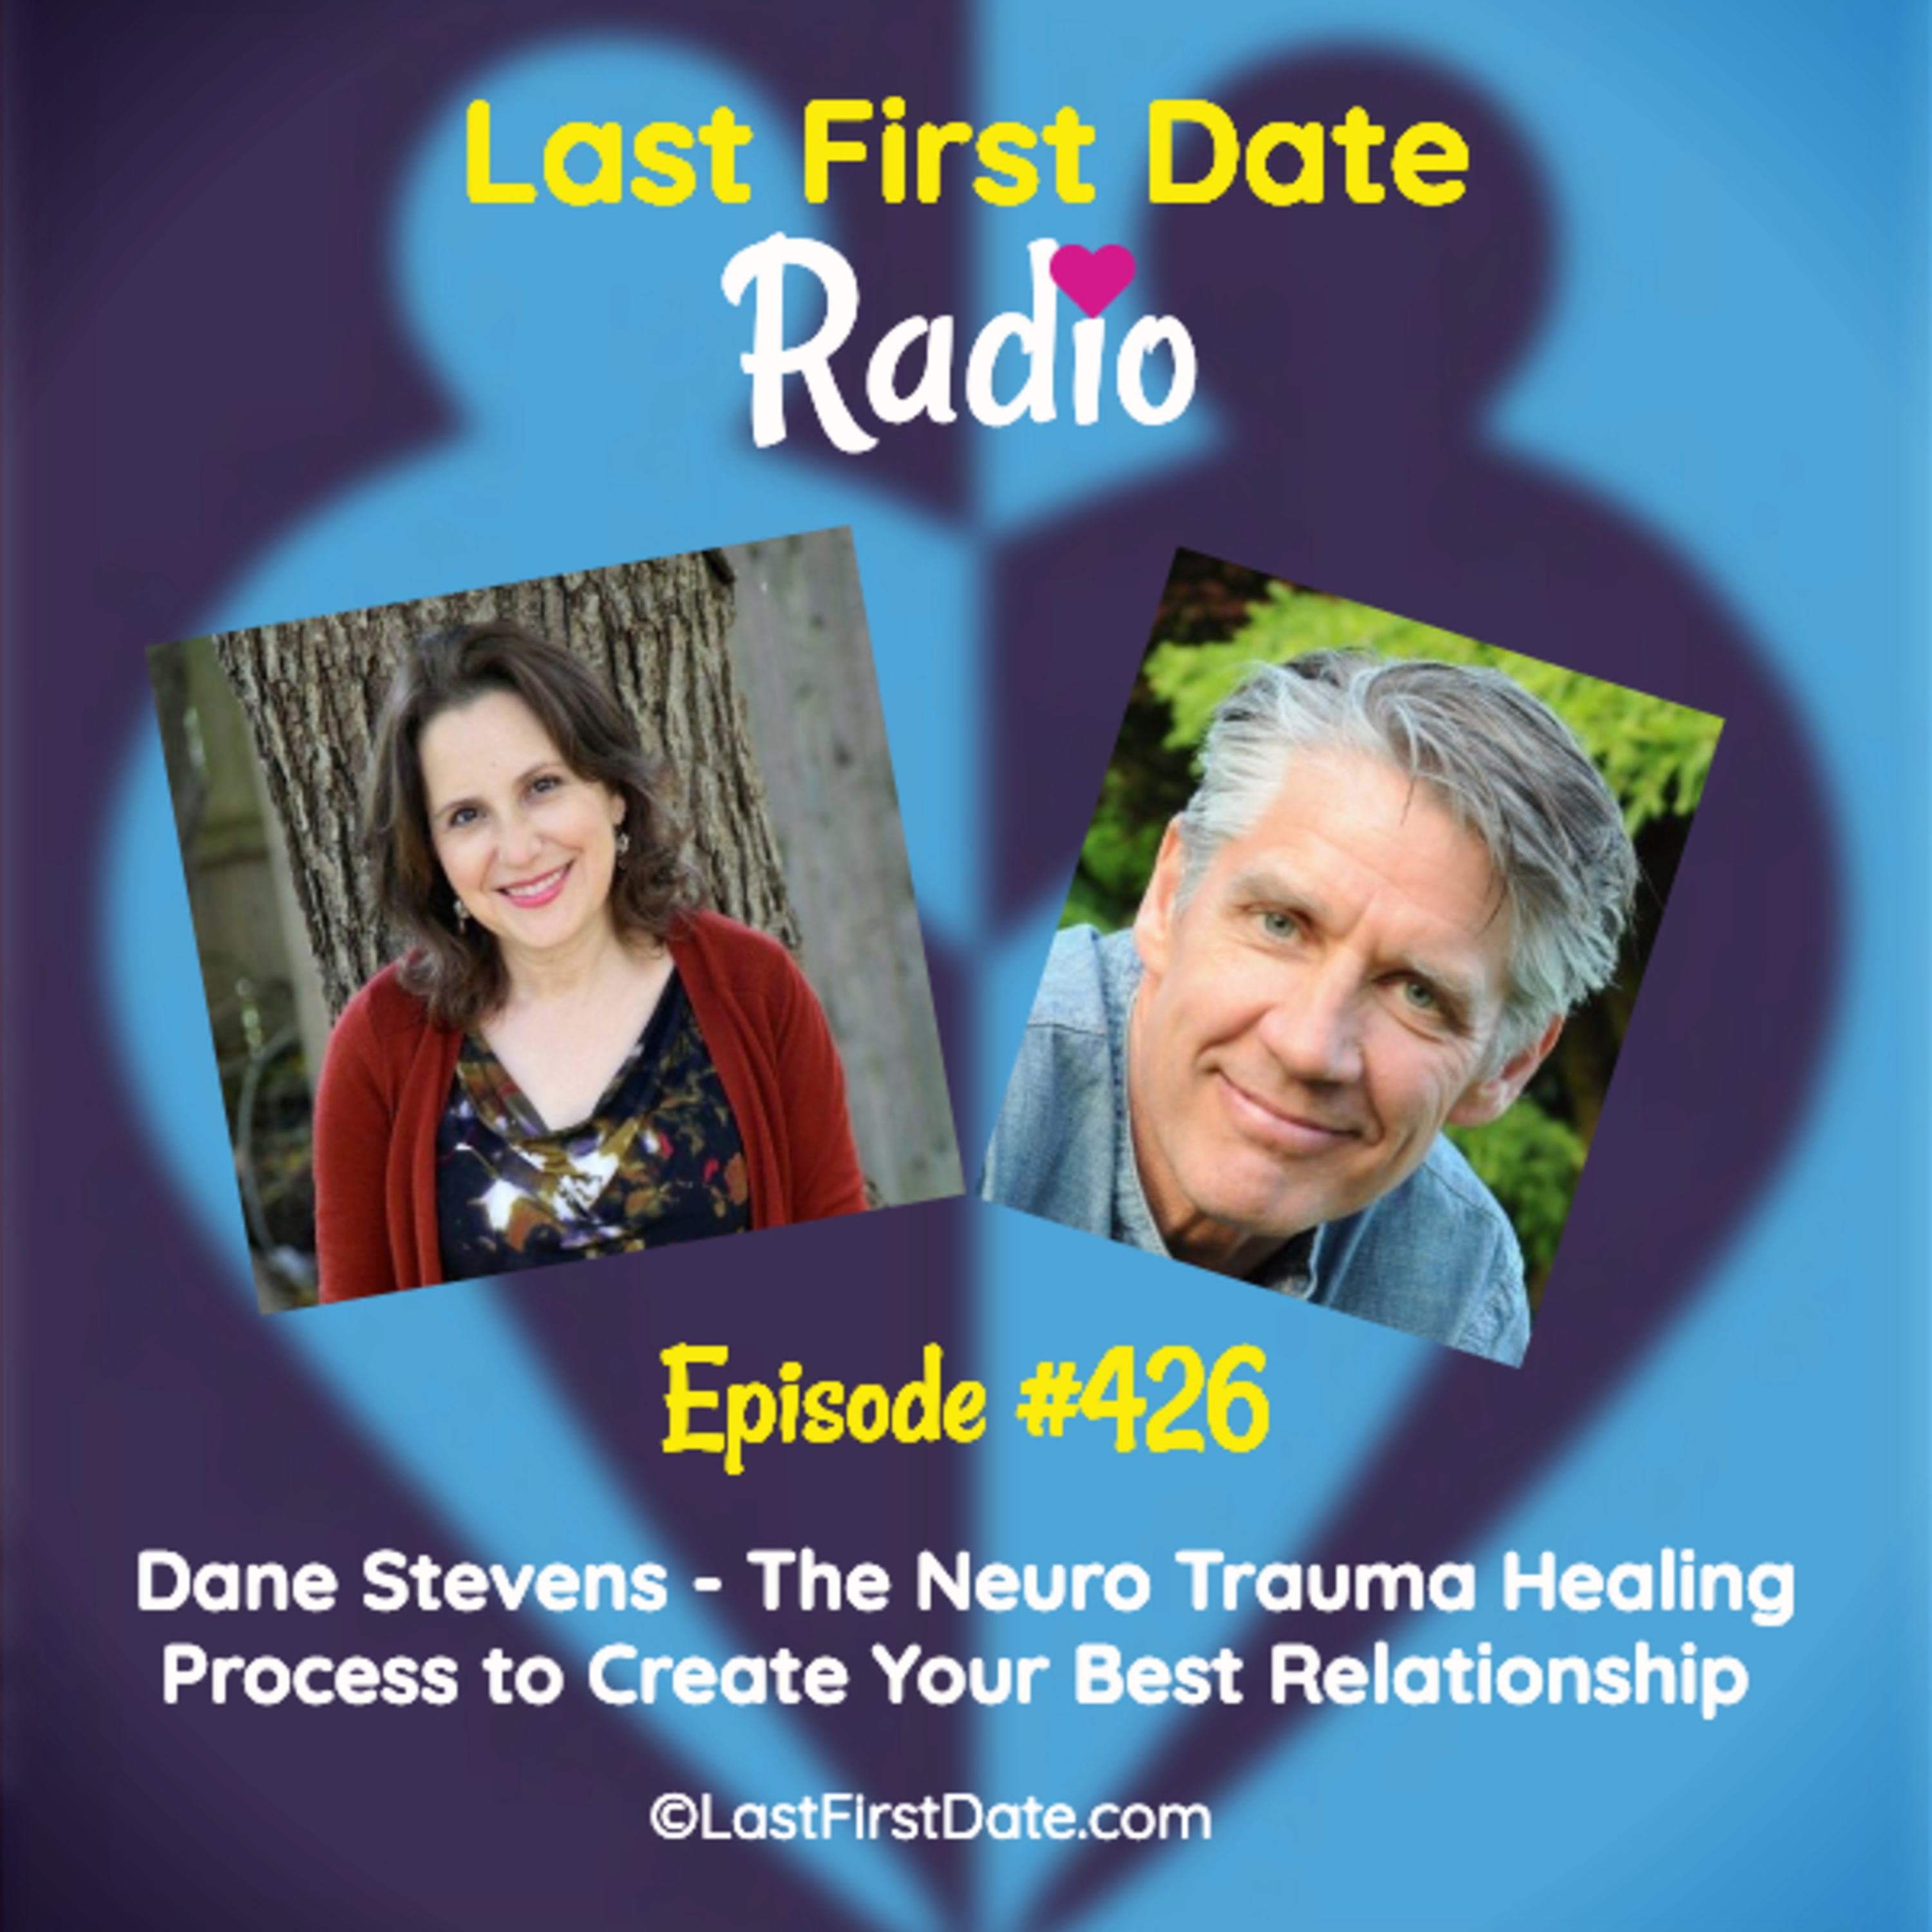 Last First Date Radio - EP 426: Dane Stevens - The Neuro Trauma Healing Process to Create Your Best Relationship